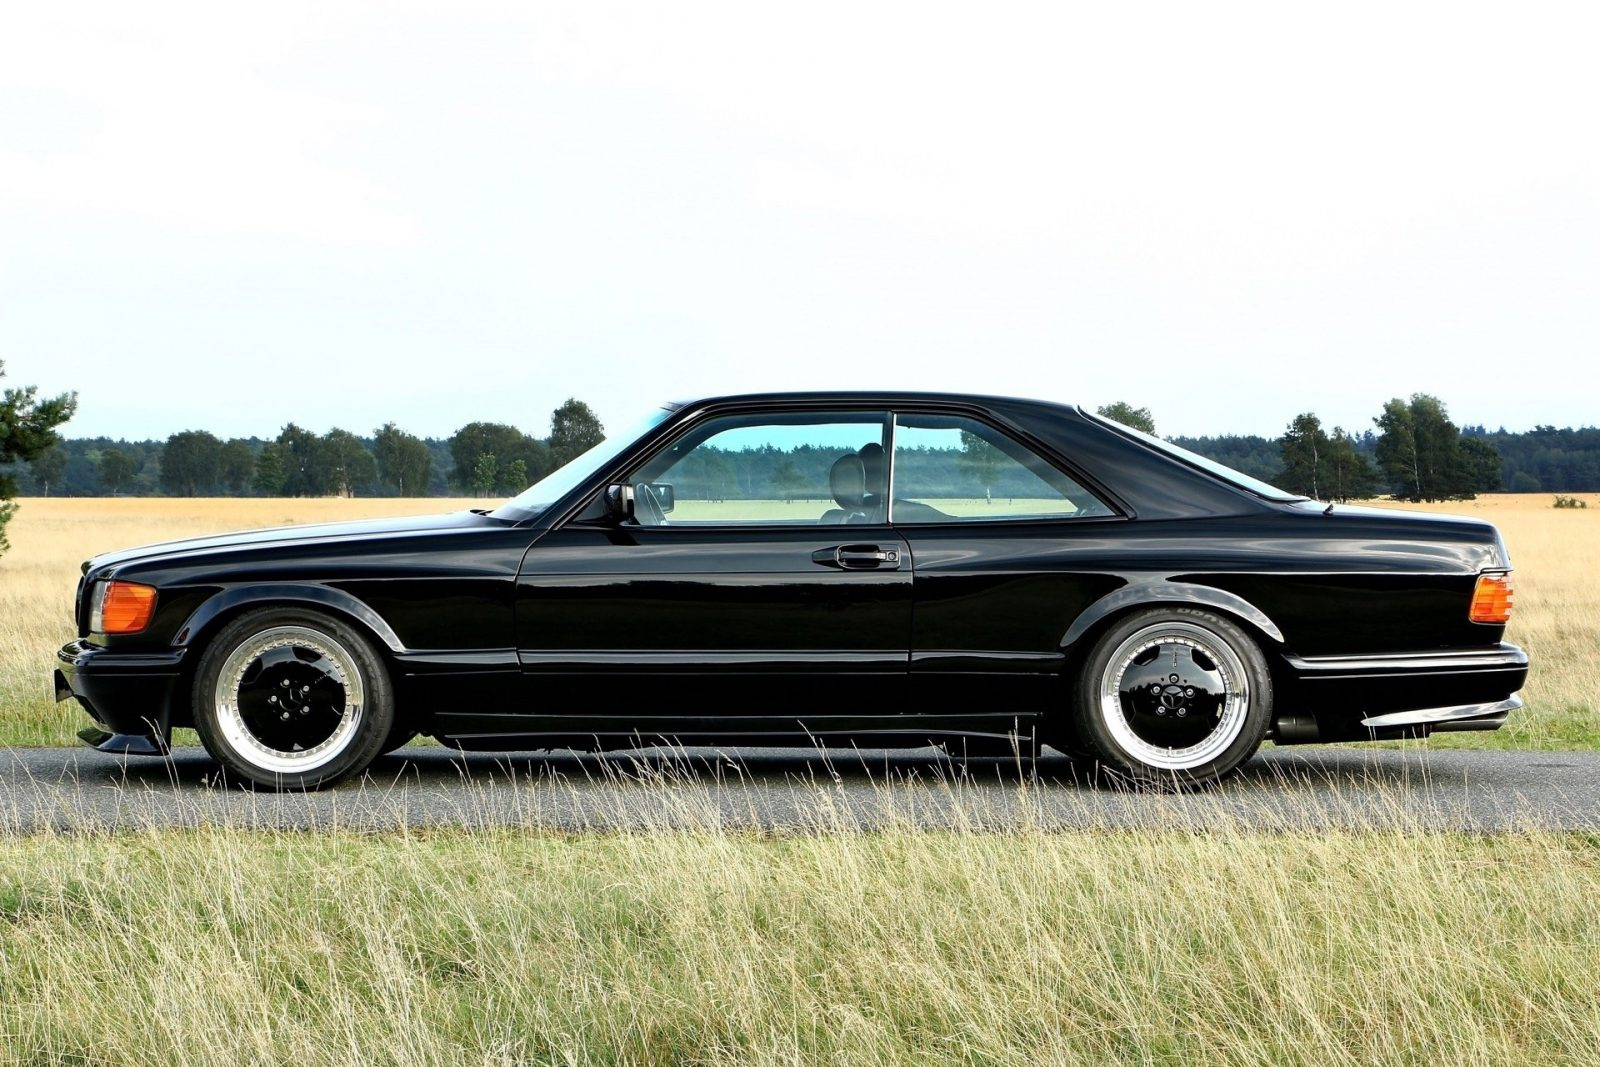 1984 Mercedes-Benz S-Class 560 SEC Widebody (AMG)